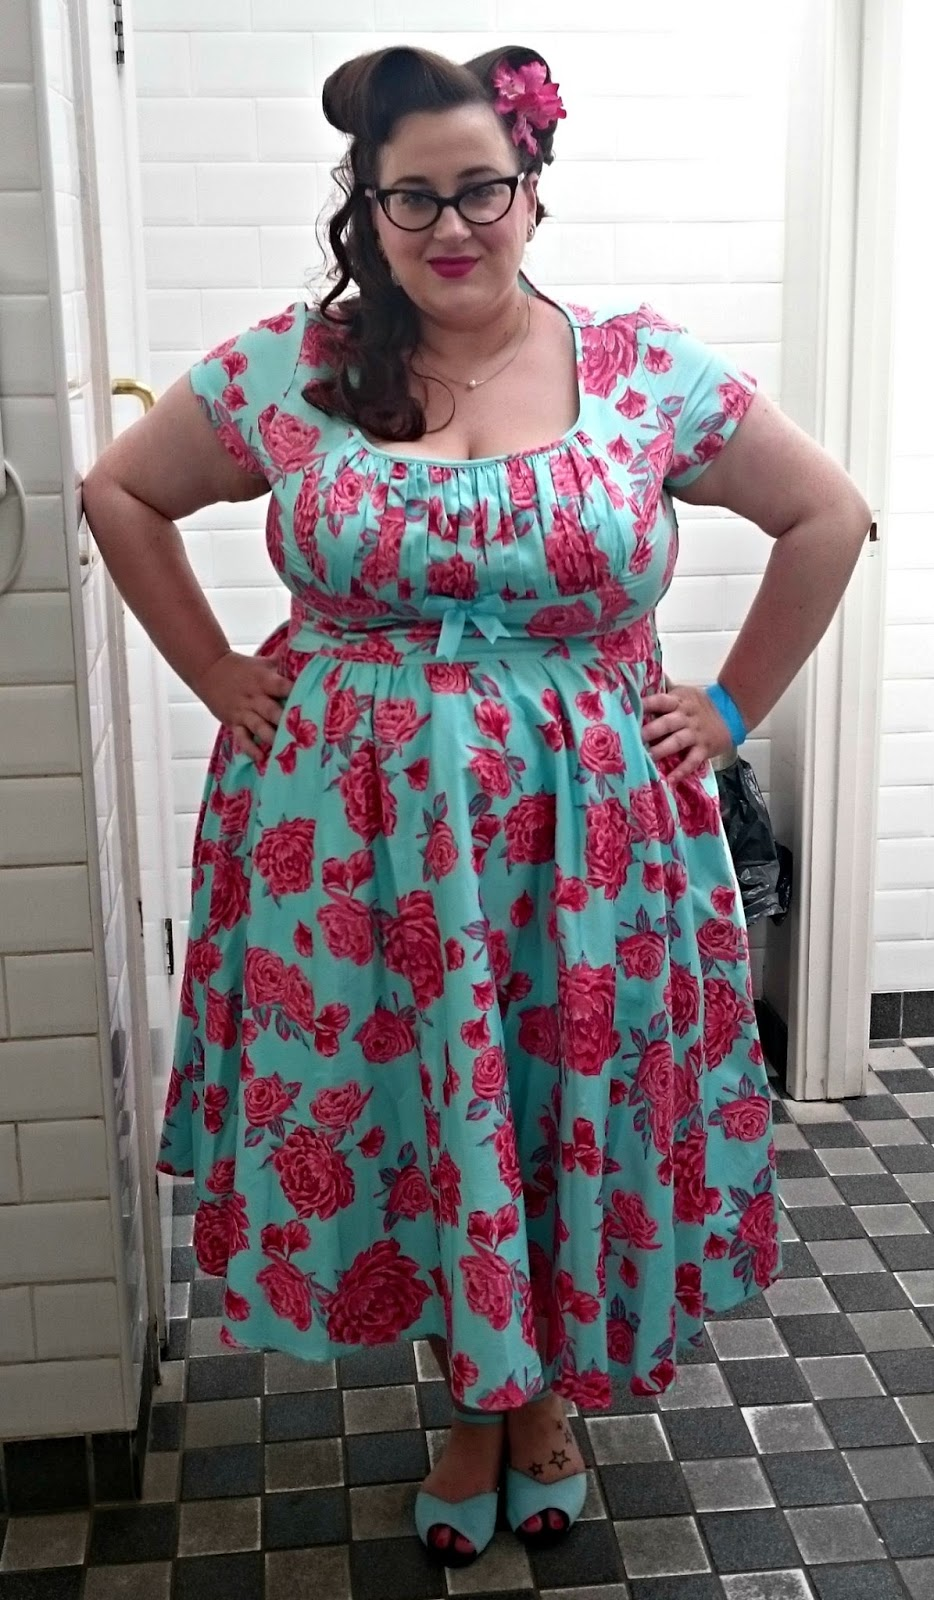 Style XL 2015 - Does My Blog Make Me Look Fat?